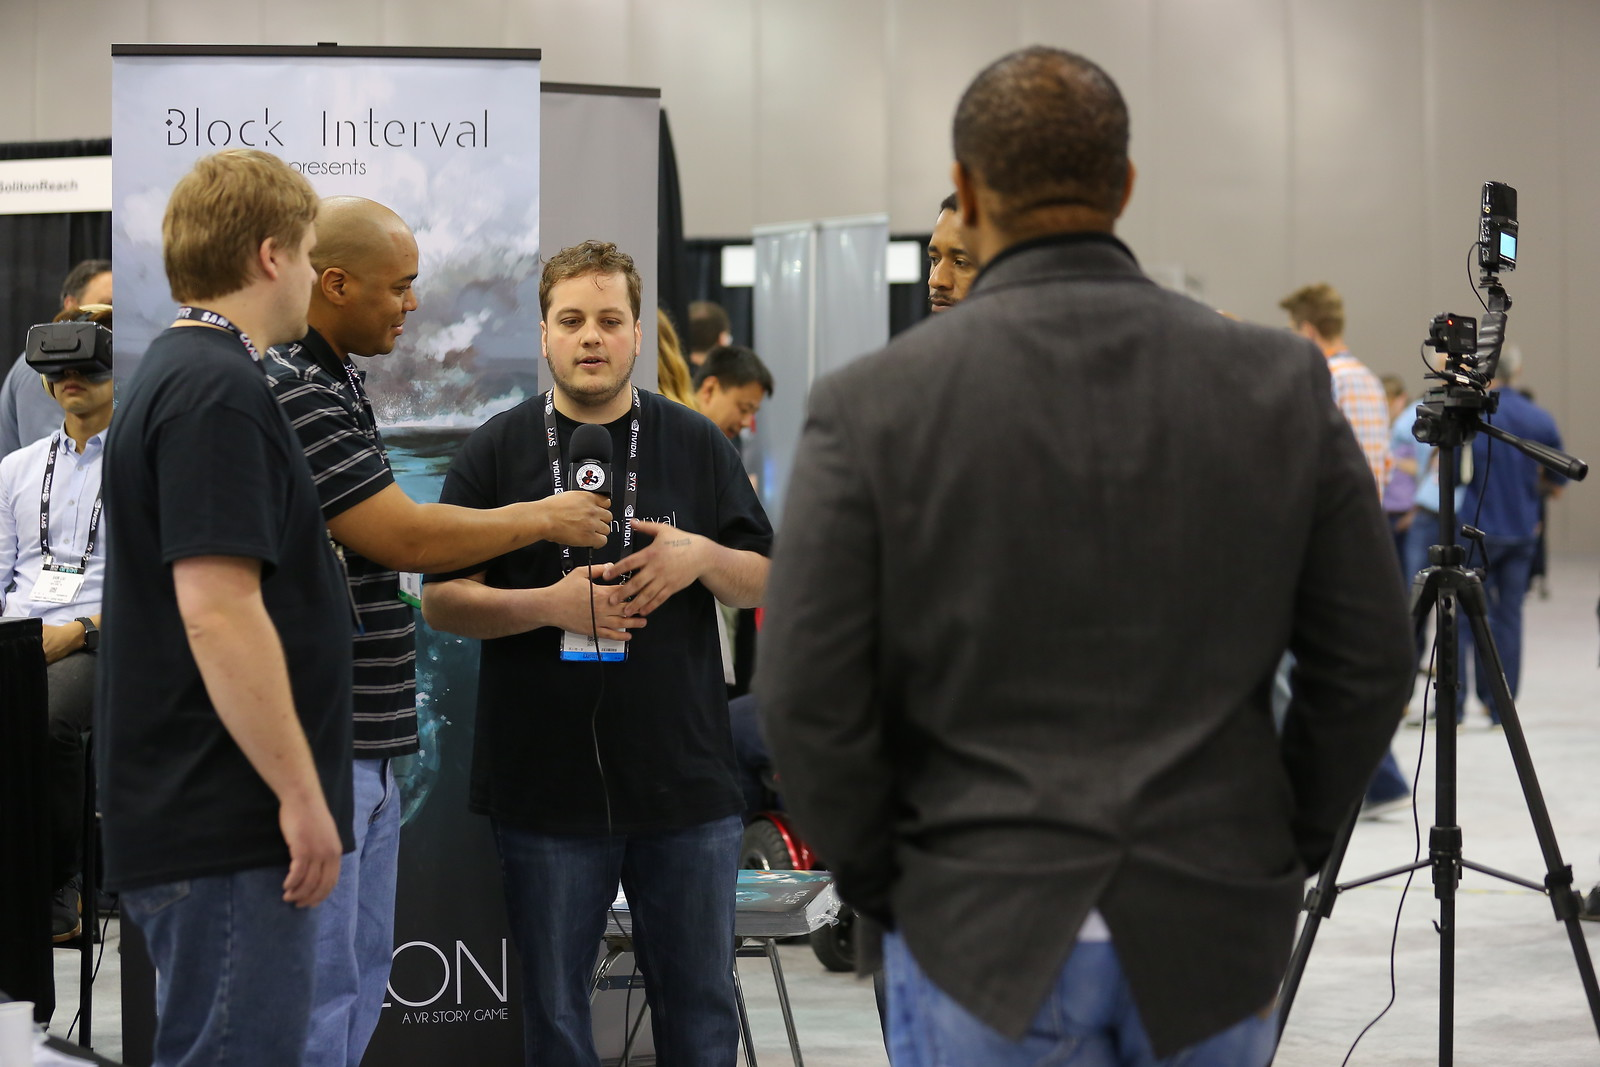 Giving an interview with some of the team at the Silicon Valley VR Expo